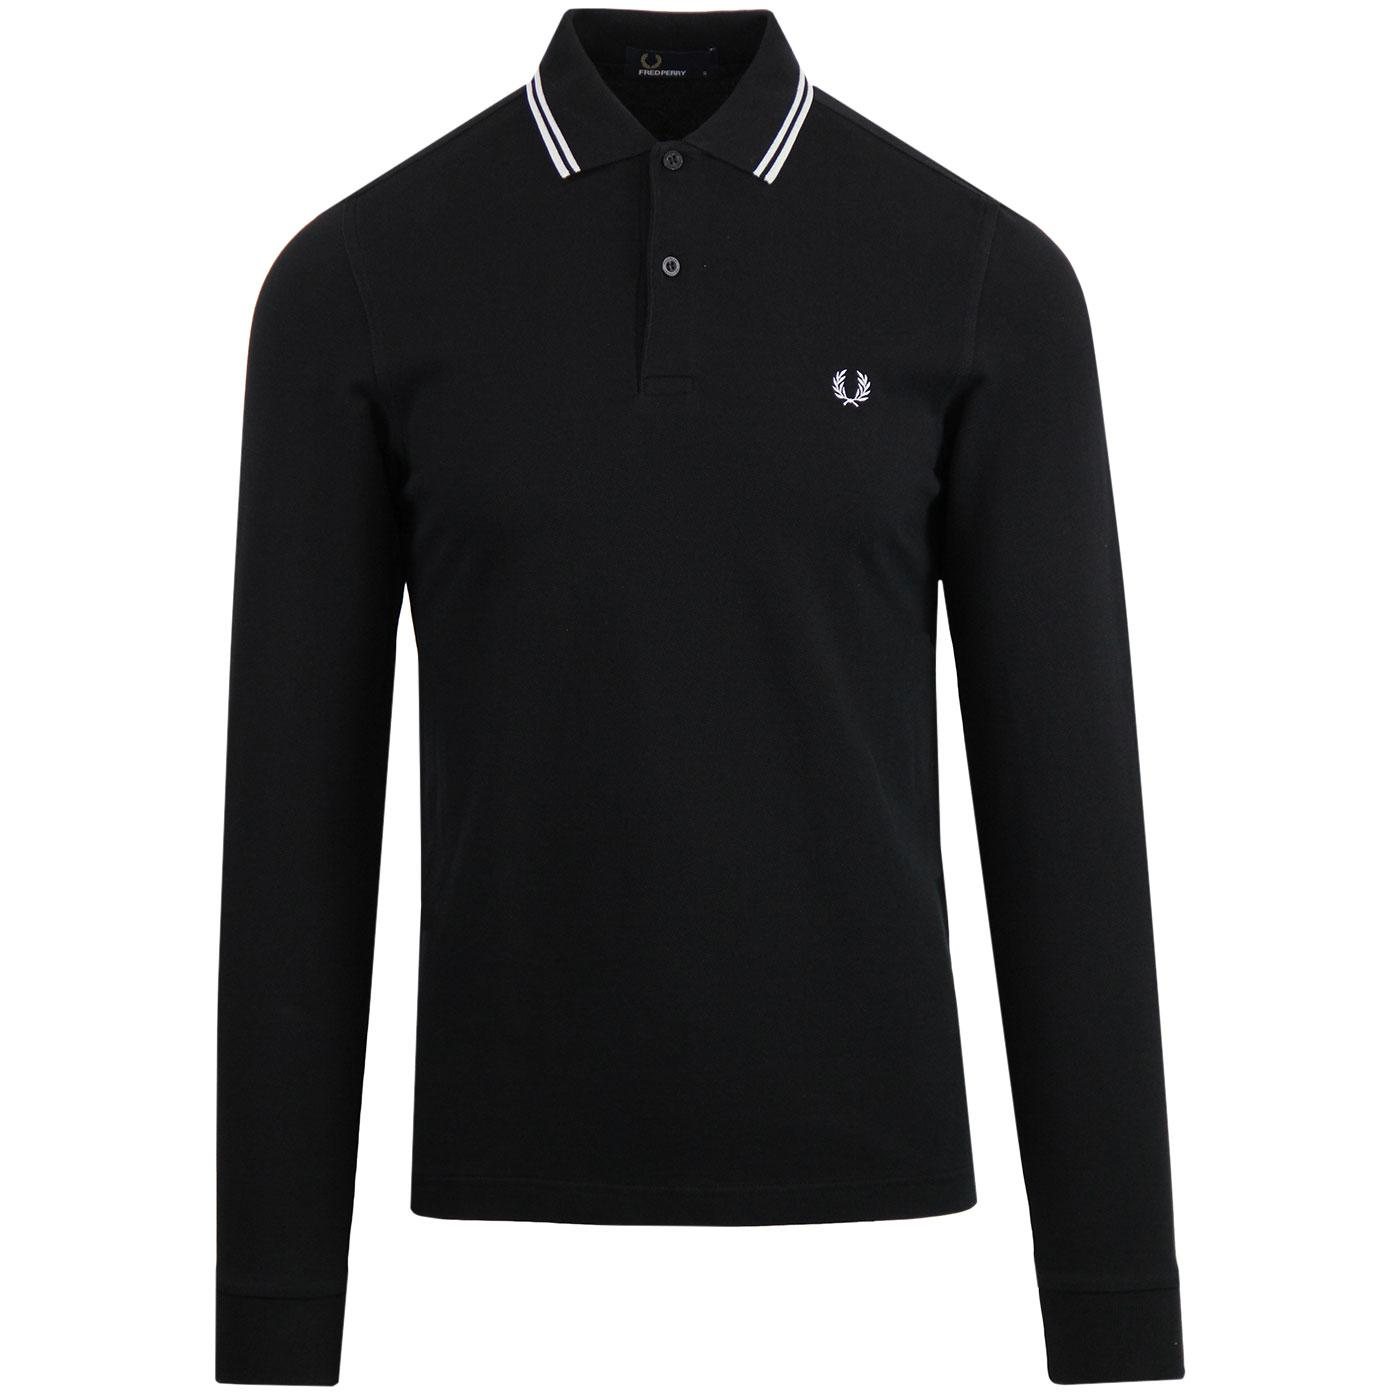 FRED PERRY Mod Twin Tipped Long Sleeve Polo (BP)